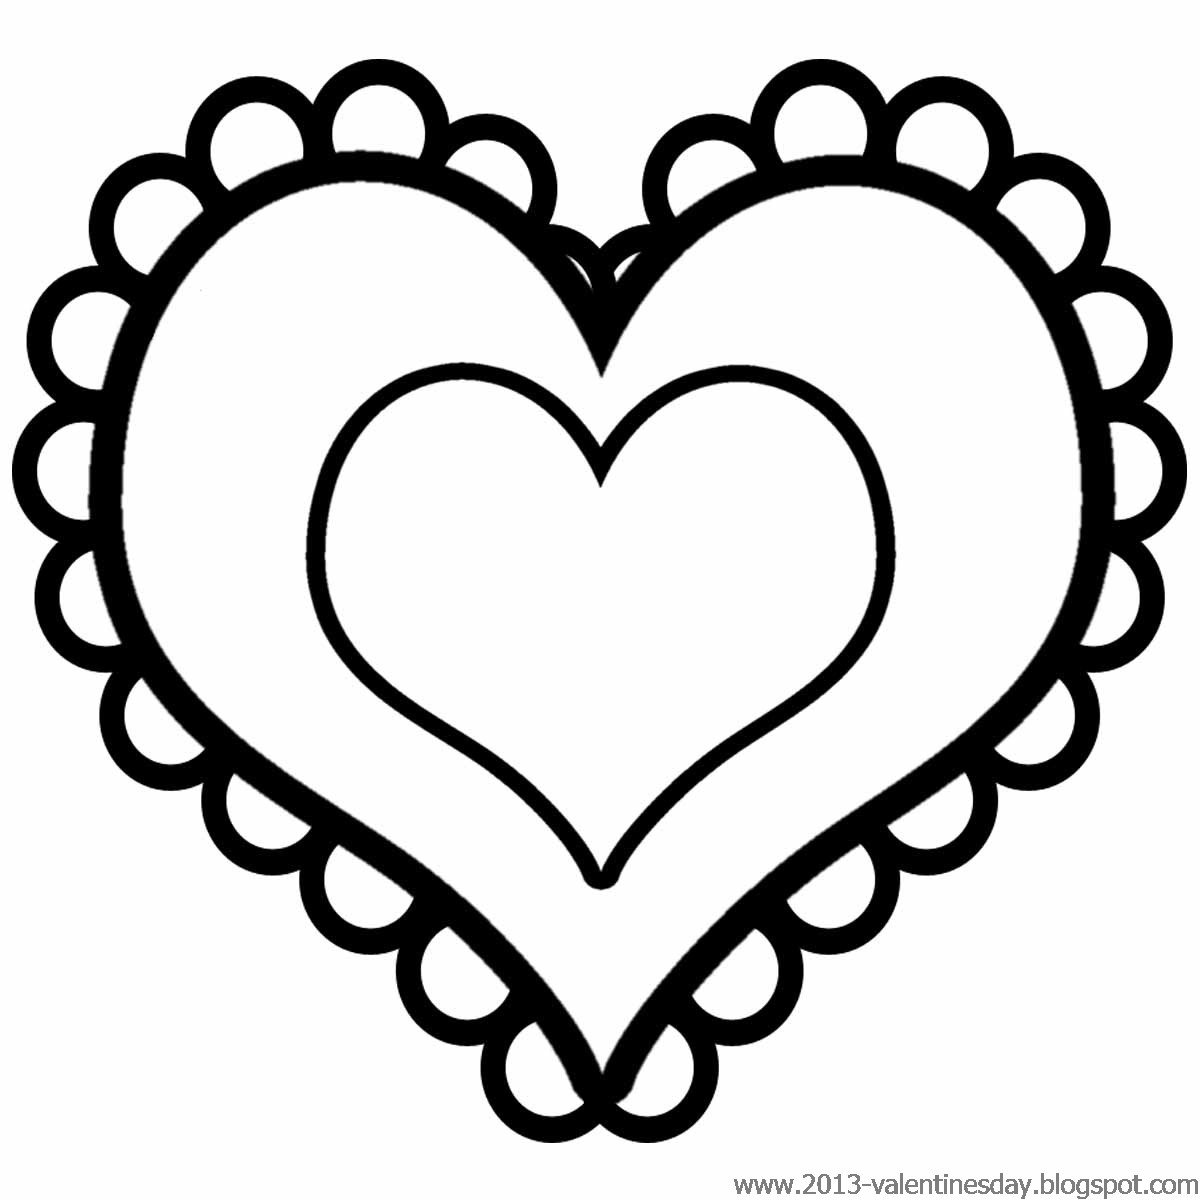 Heart Vector Black And White Heart Clip -Heart Vector Black And White Heart Clip Art-17